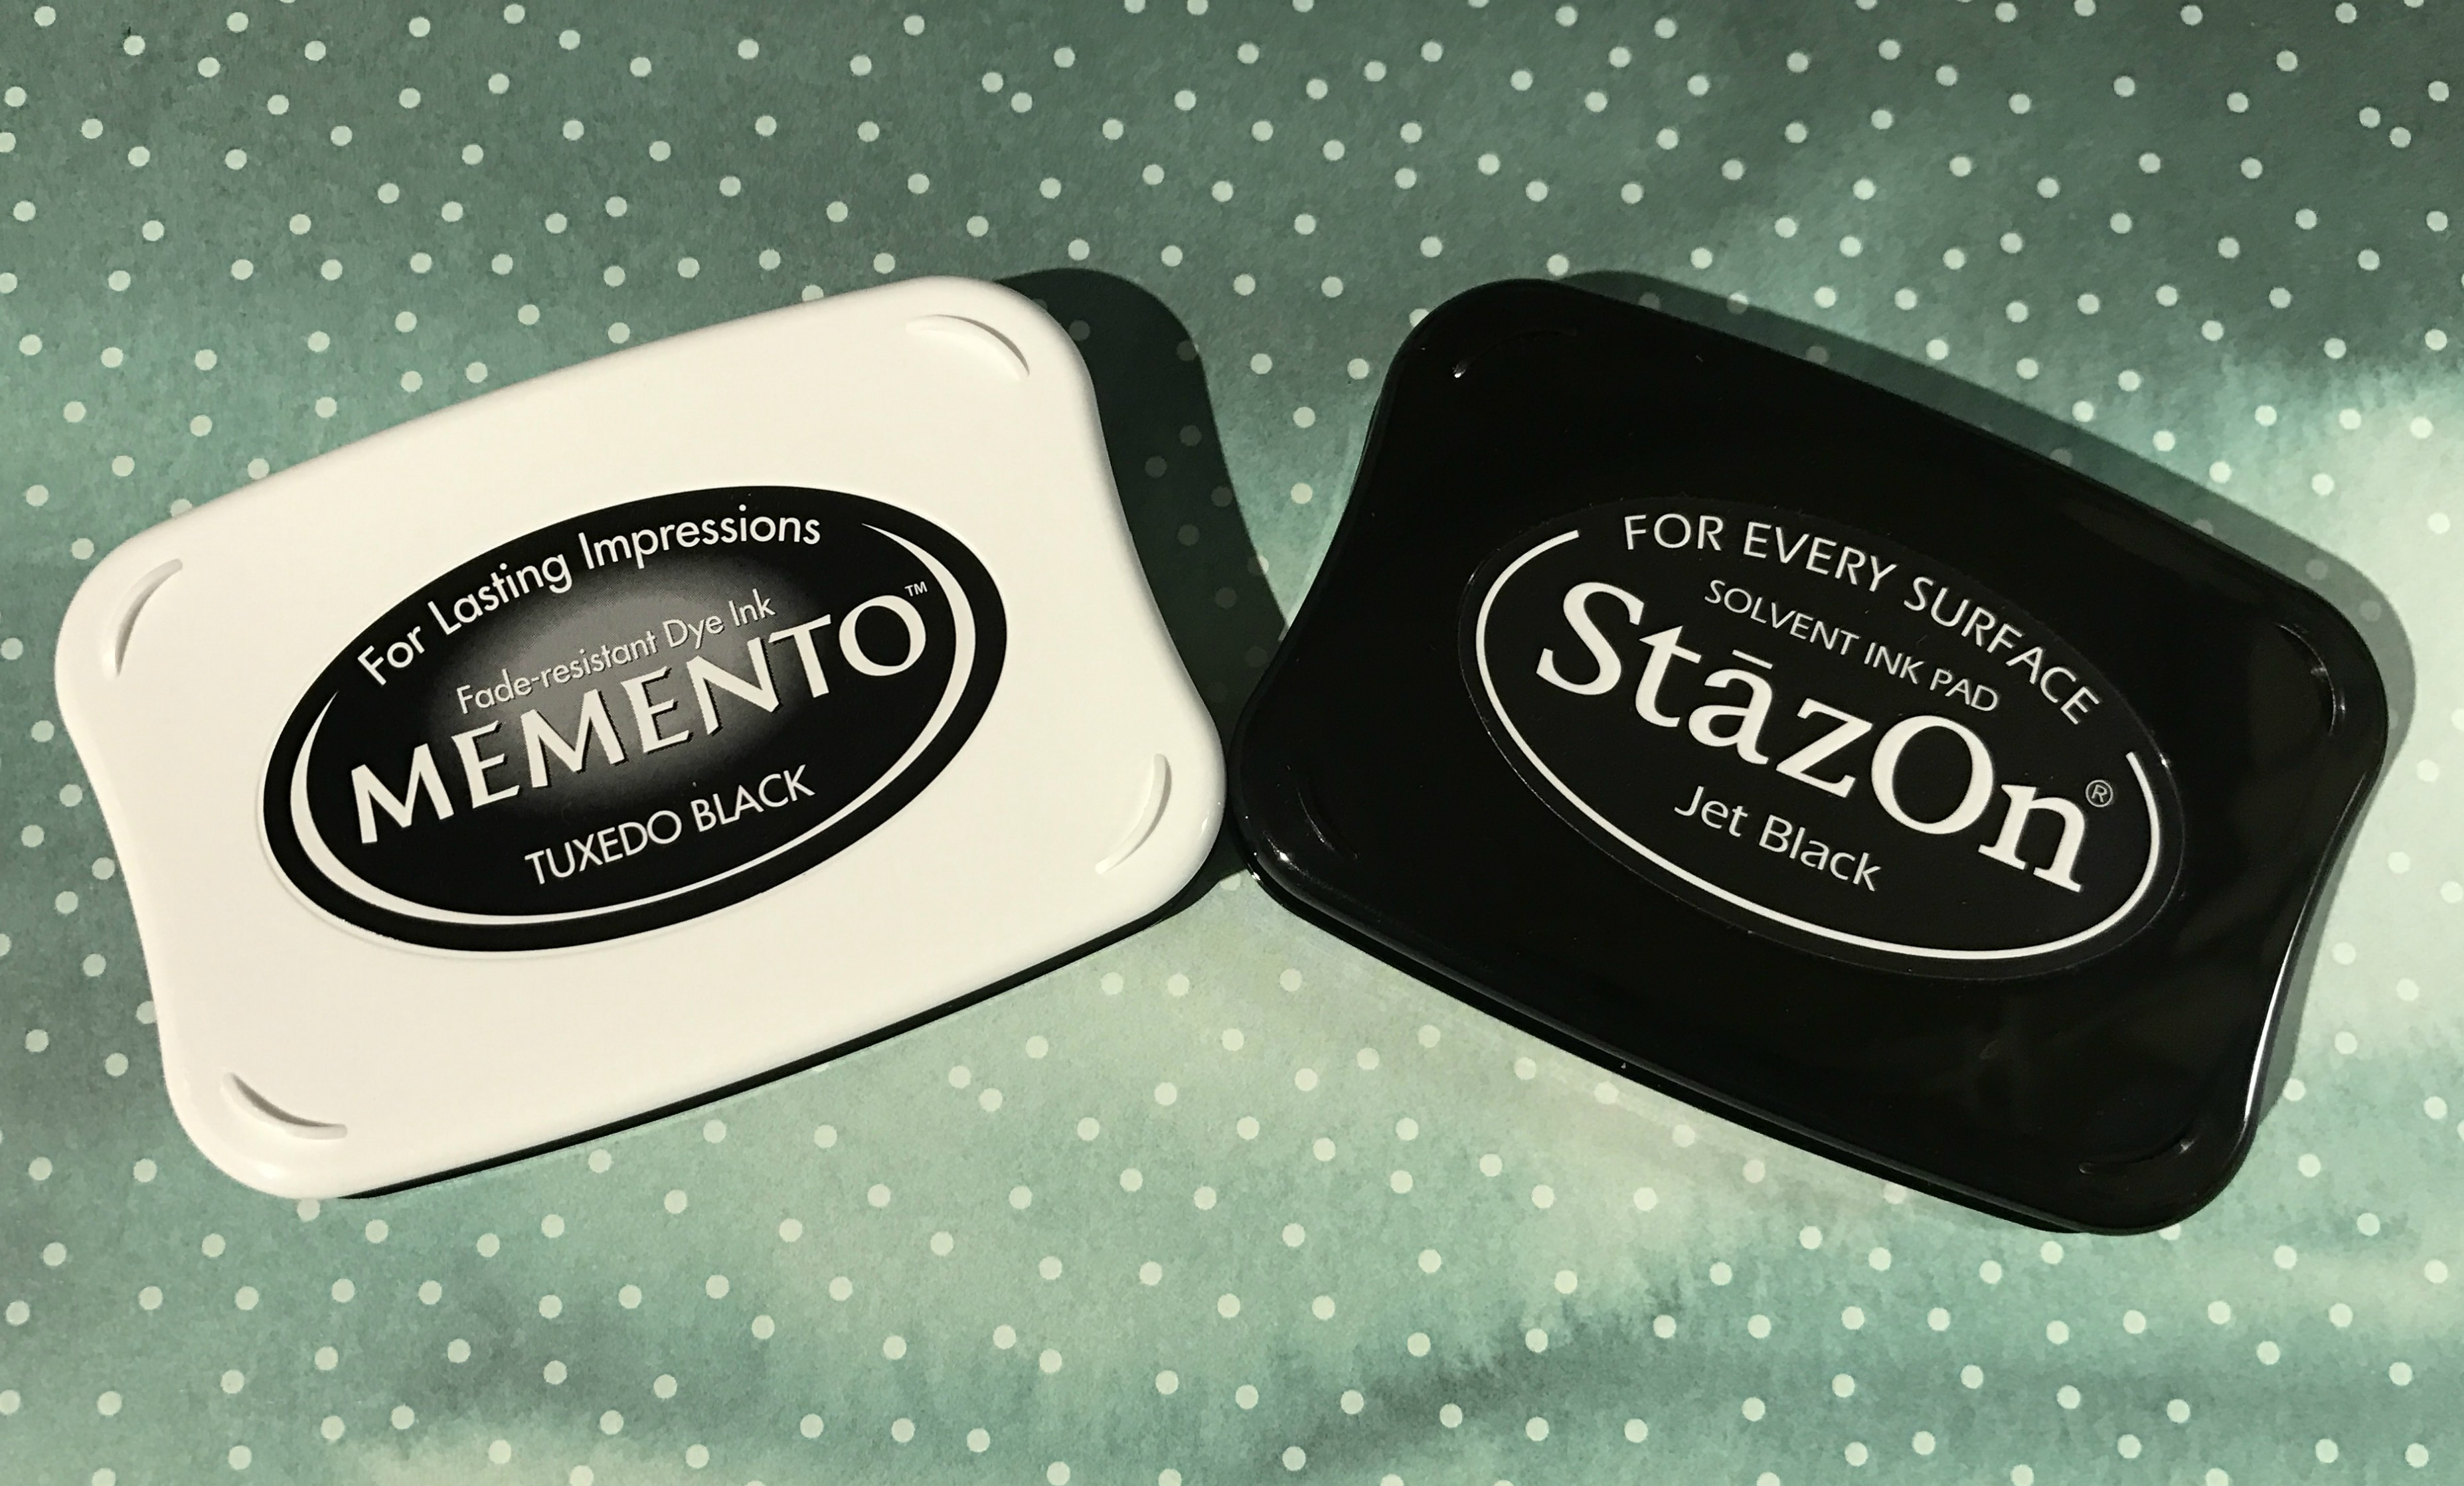 Memento and Staz On ink pads